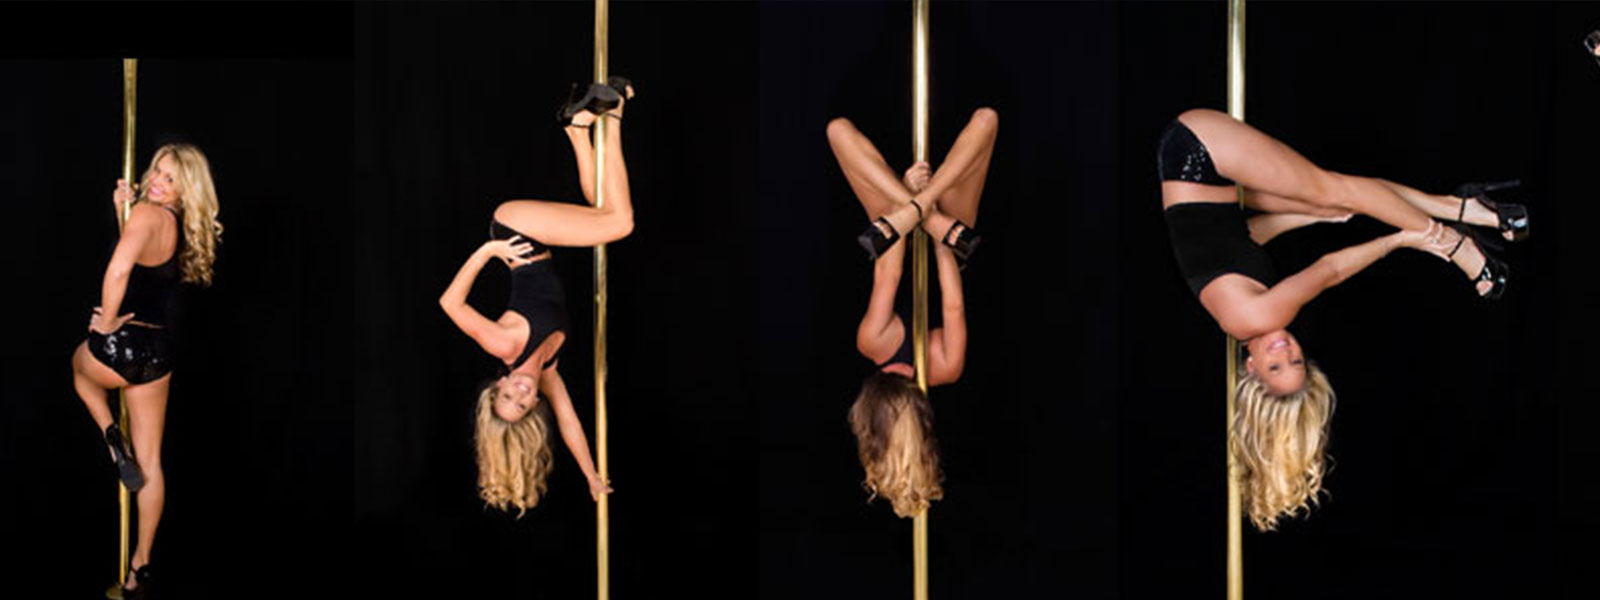 Pole dancing fitness classes in Johannesburg